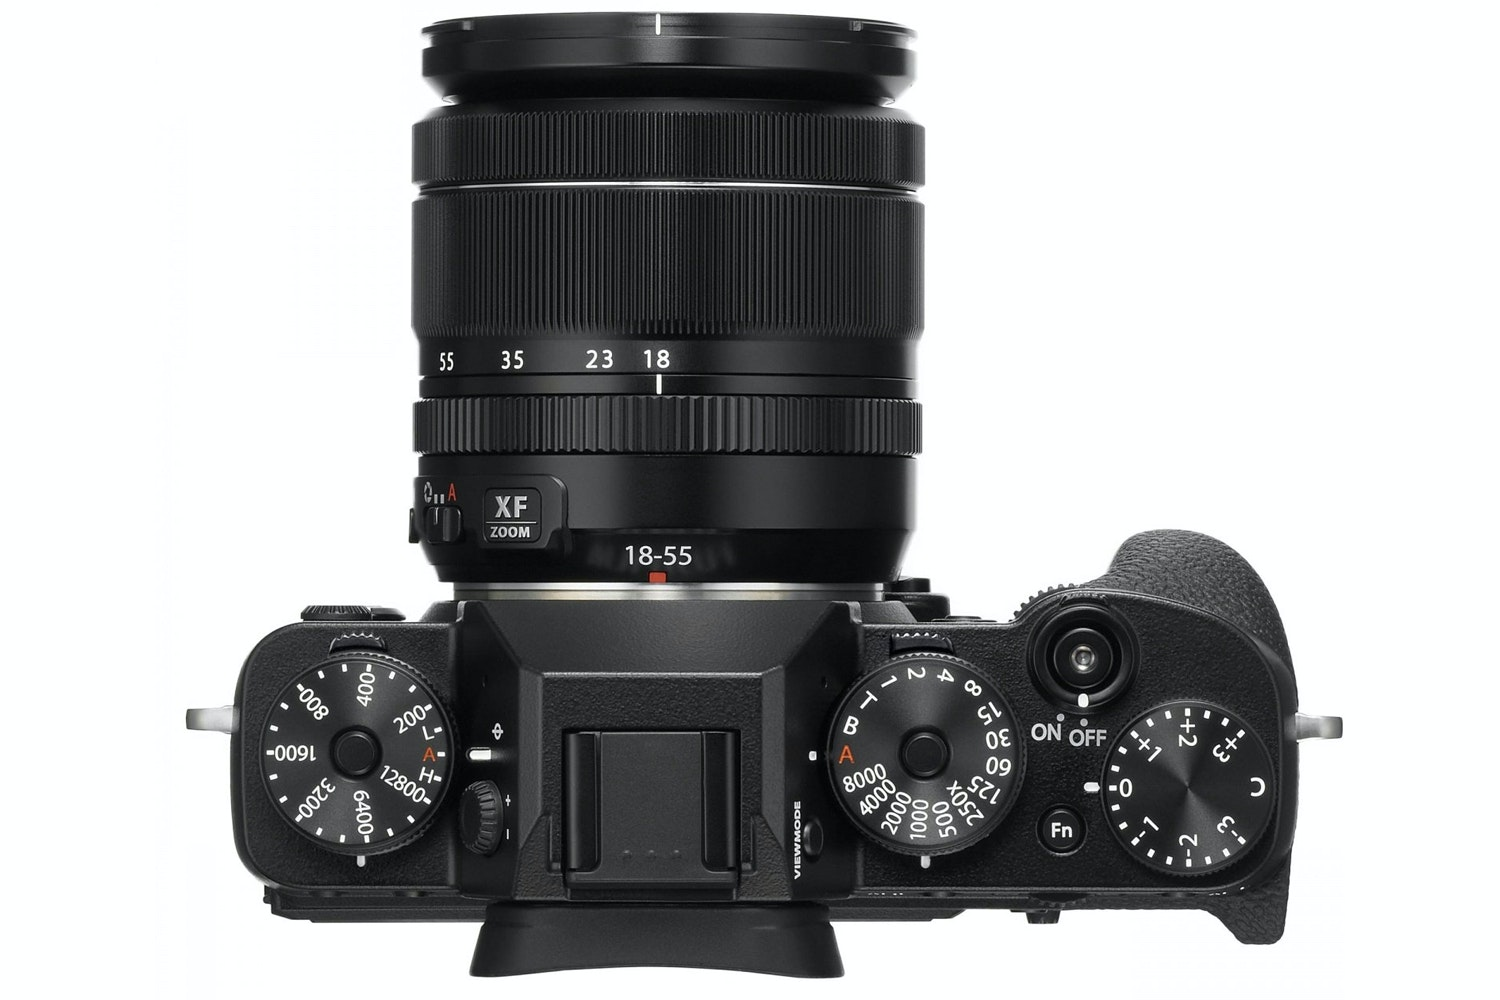 Fujifilm X-T2 & 18-55mm Lens Kit